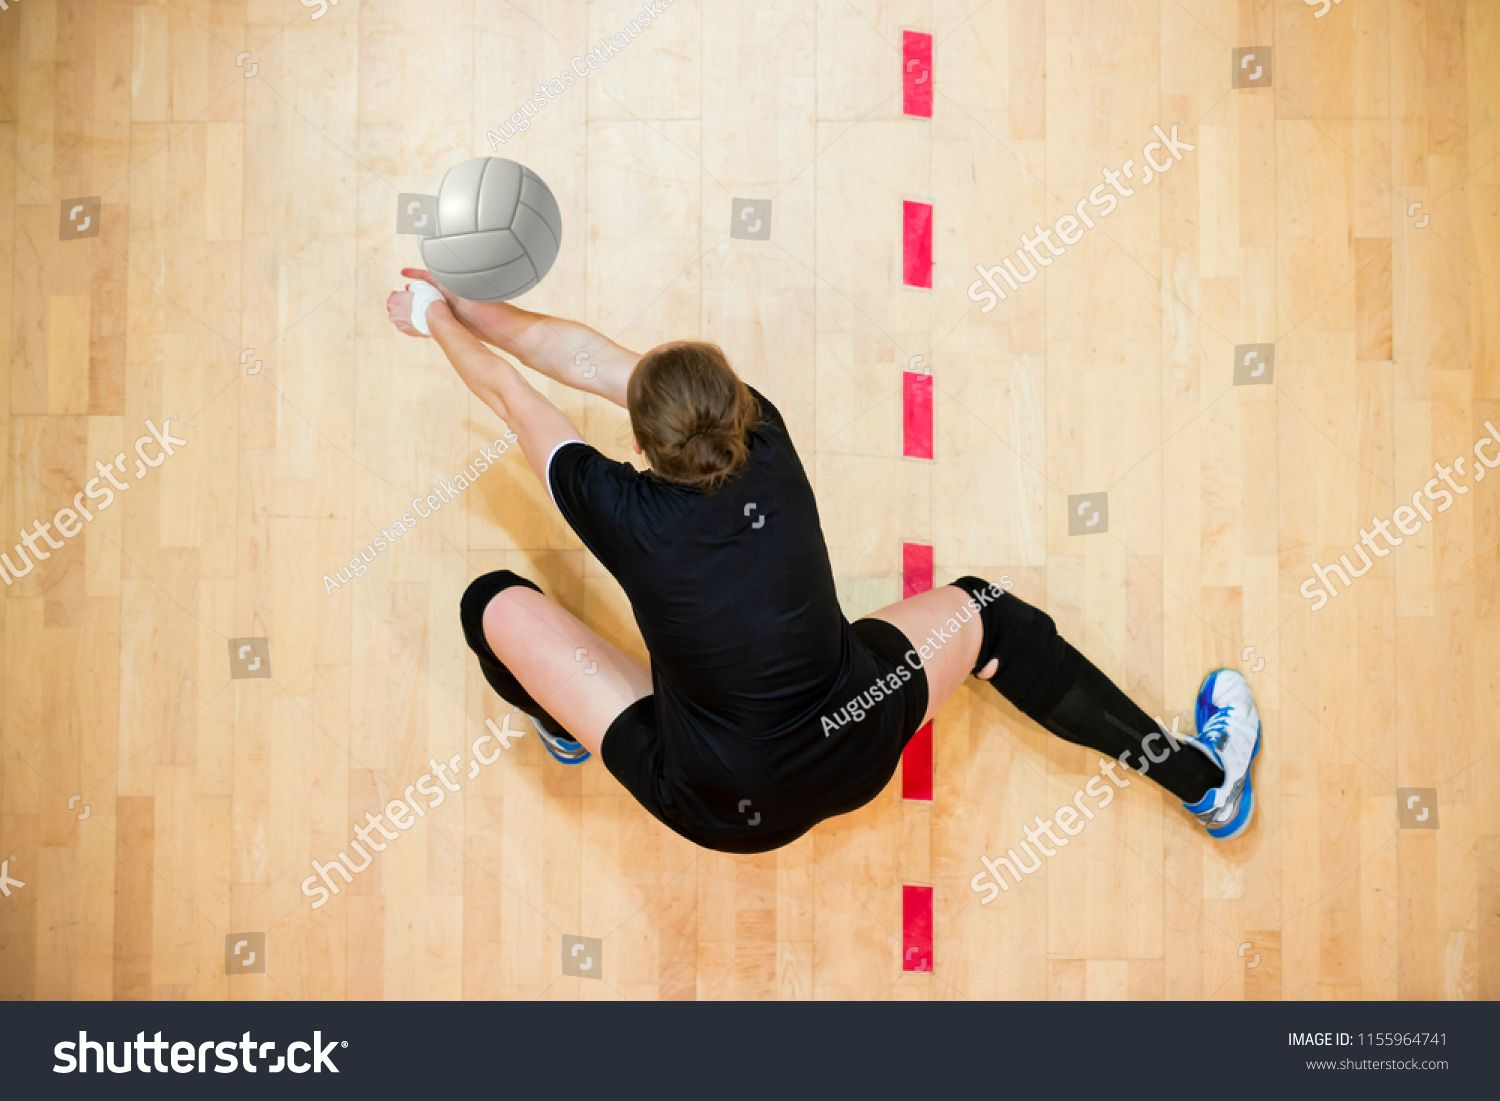 Upper View Of Female Volleyball Player At Service Ad Sponsored Female View Upper Service Female Volleyball Players Volleyball Players Players